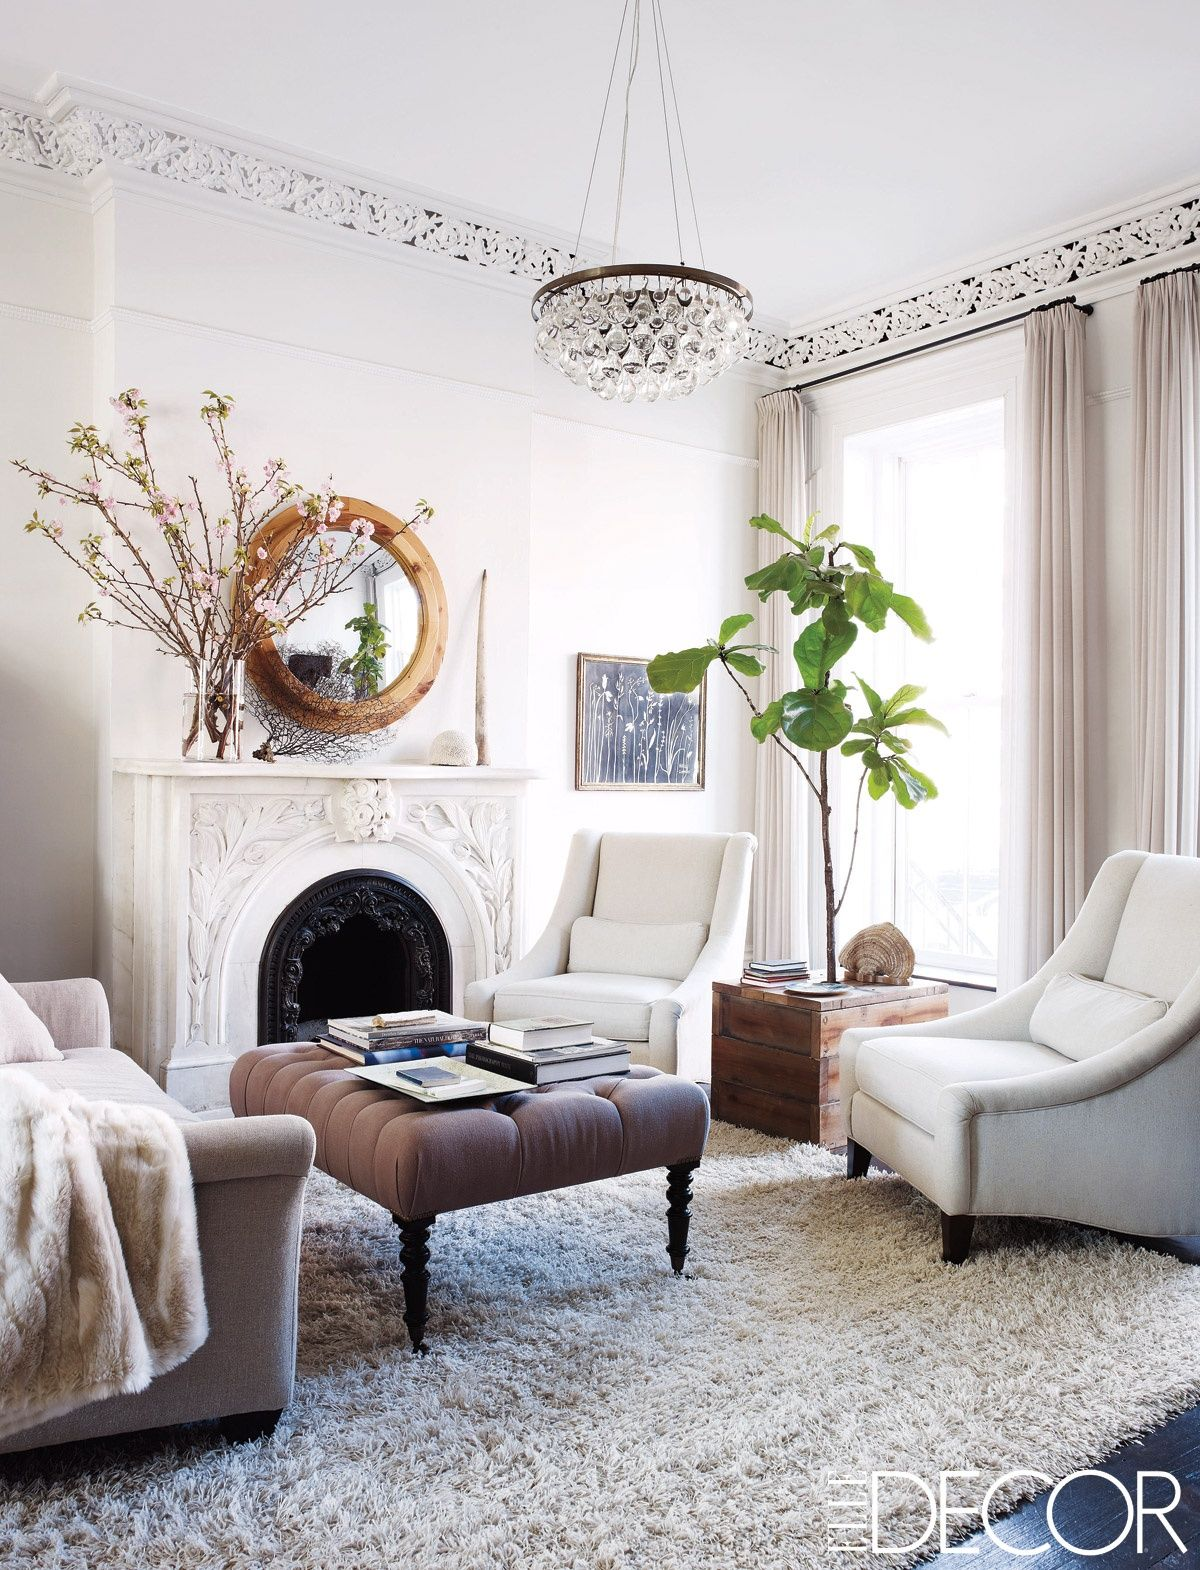 Keri Russell at Home | Living rooms, Room and Interiors